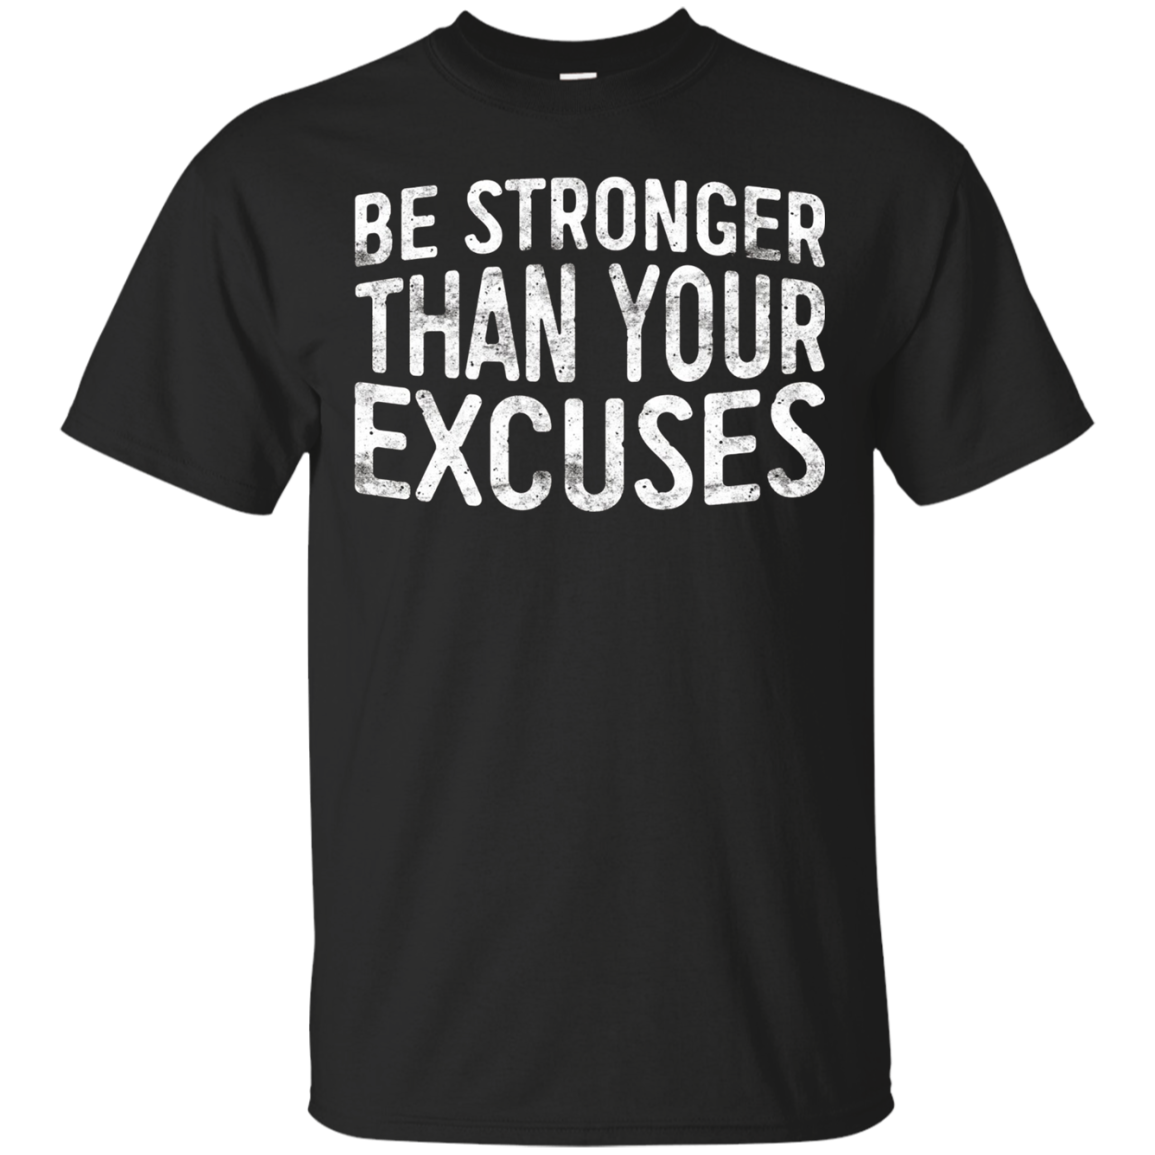 Be Stronger Than Your Excuses T-Shirt Motivational Gift